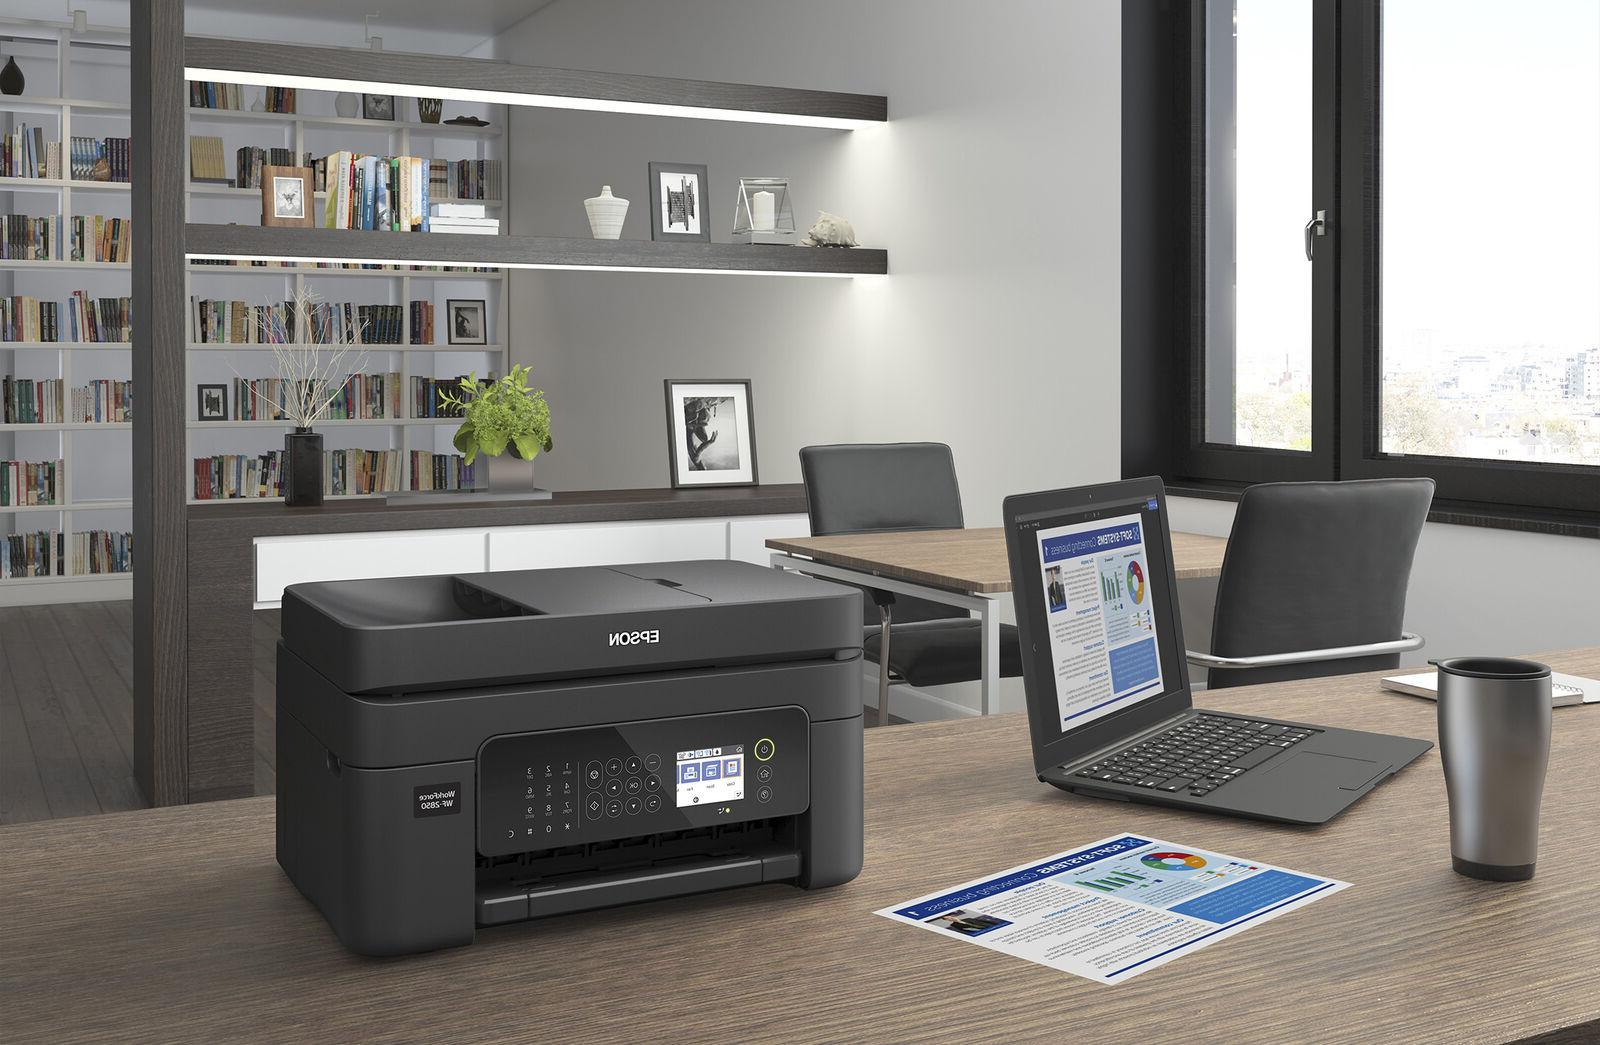 Epson Printer Scanner Copier All-In-One Office Home